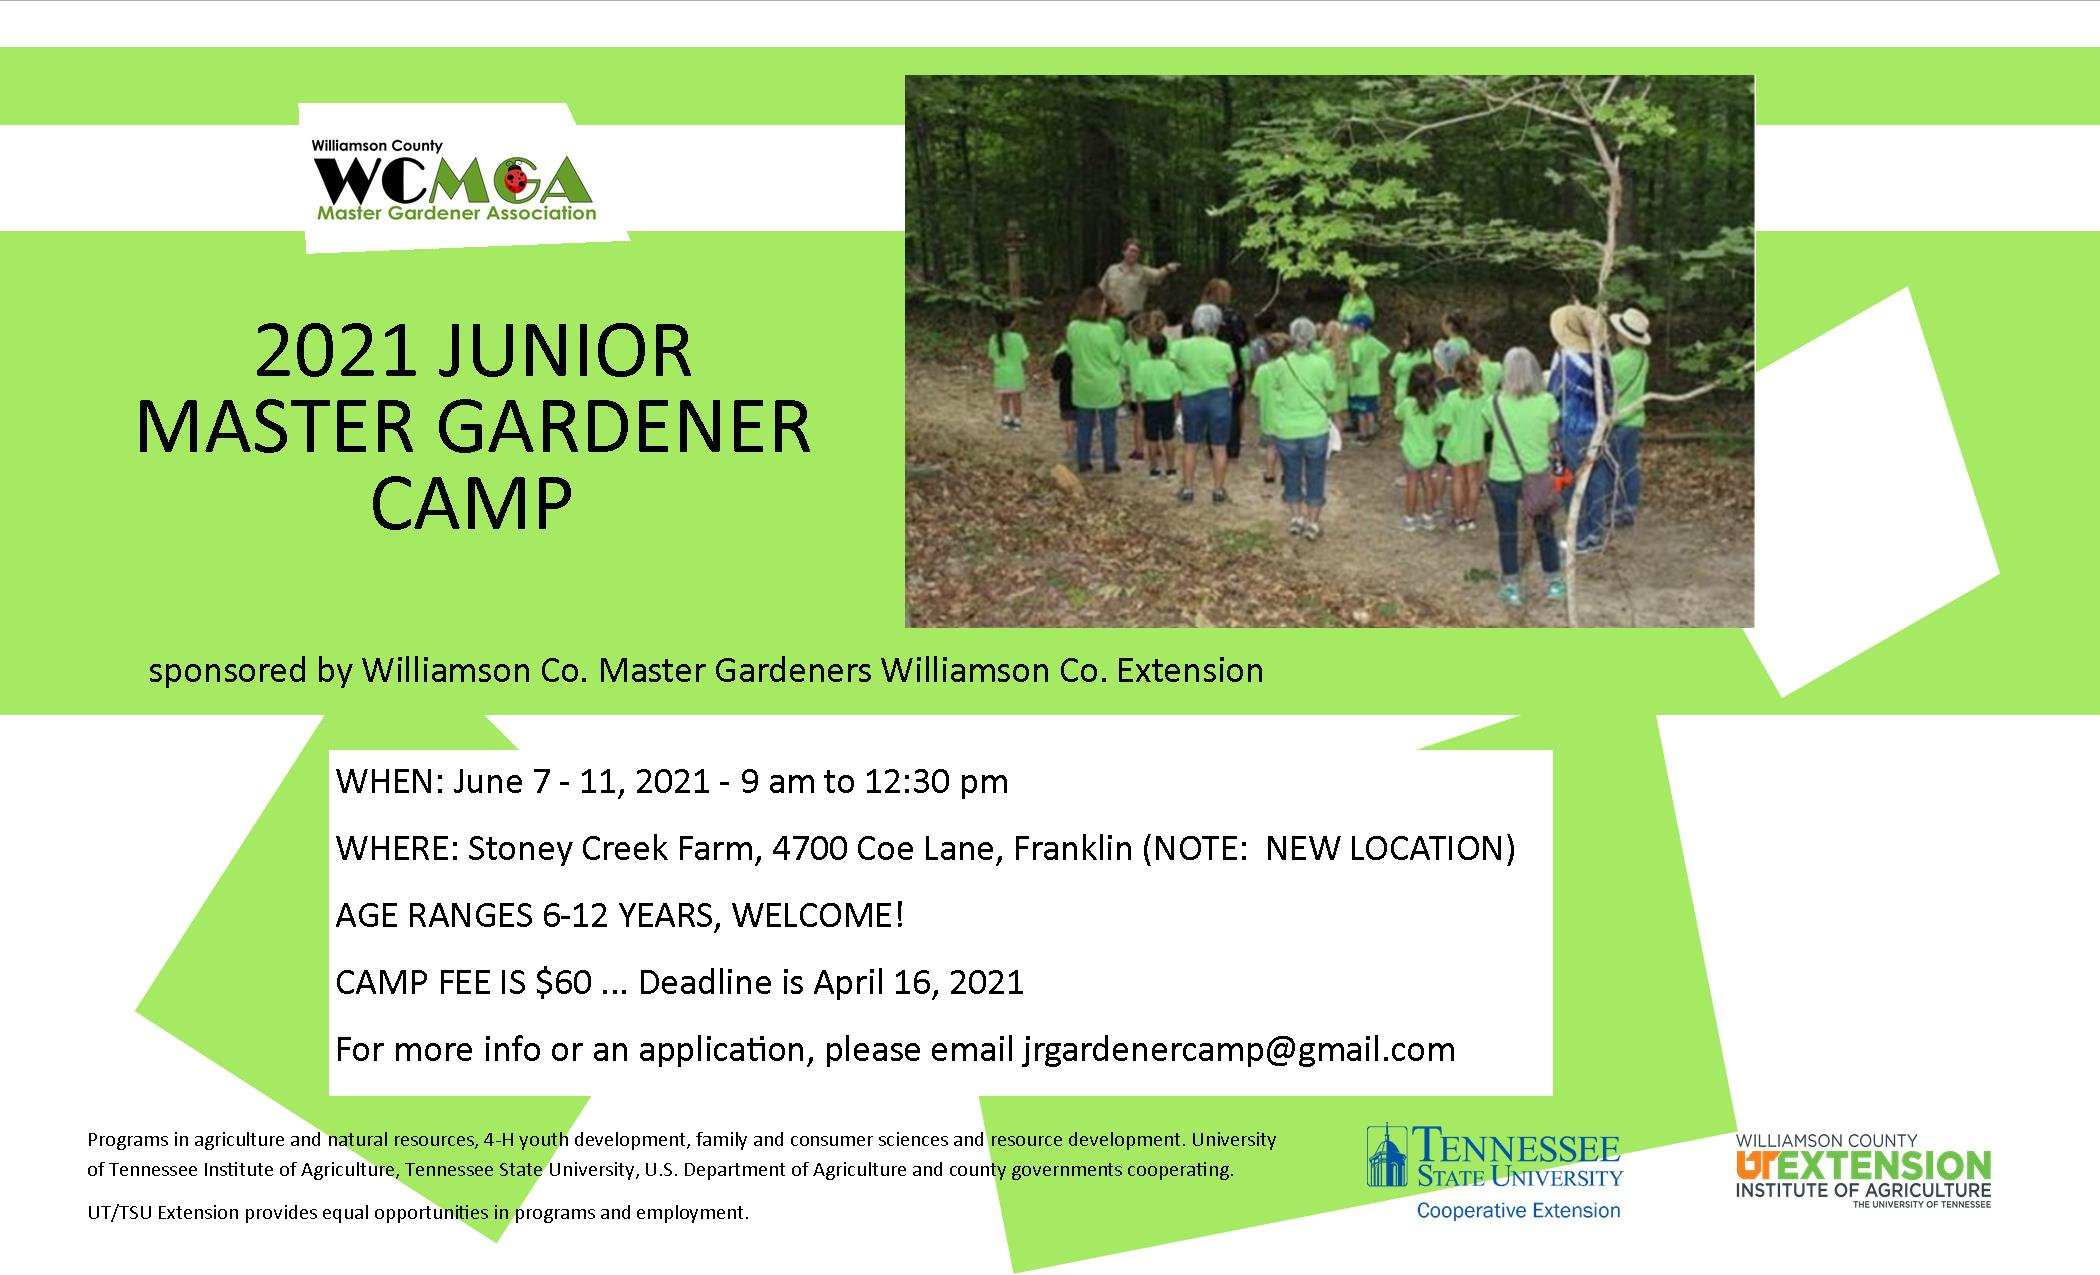 Junior Master Gardener Camp